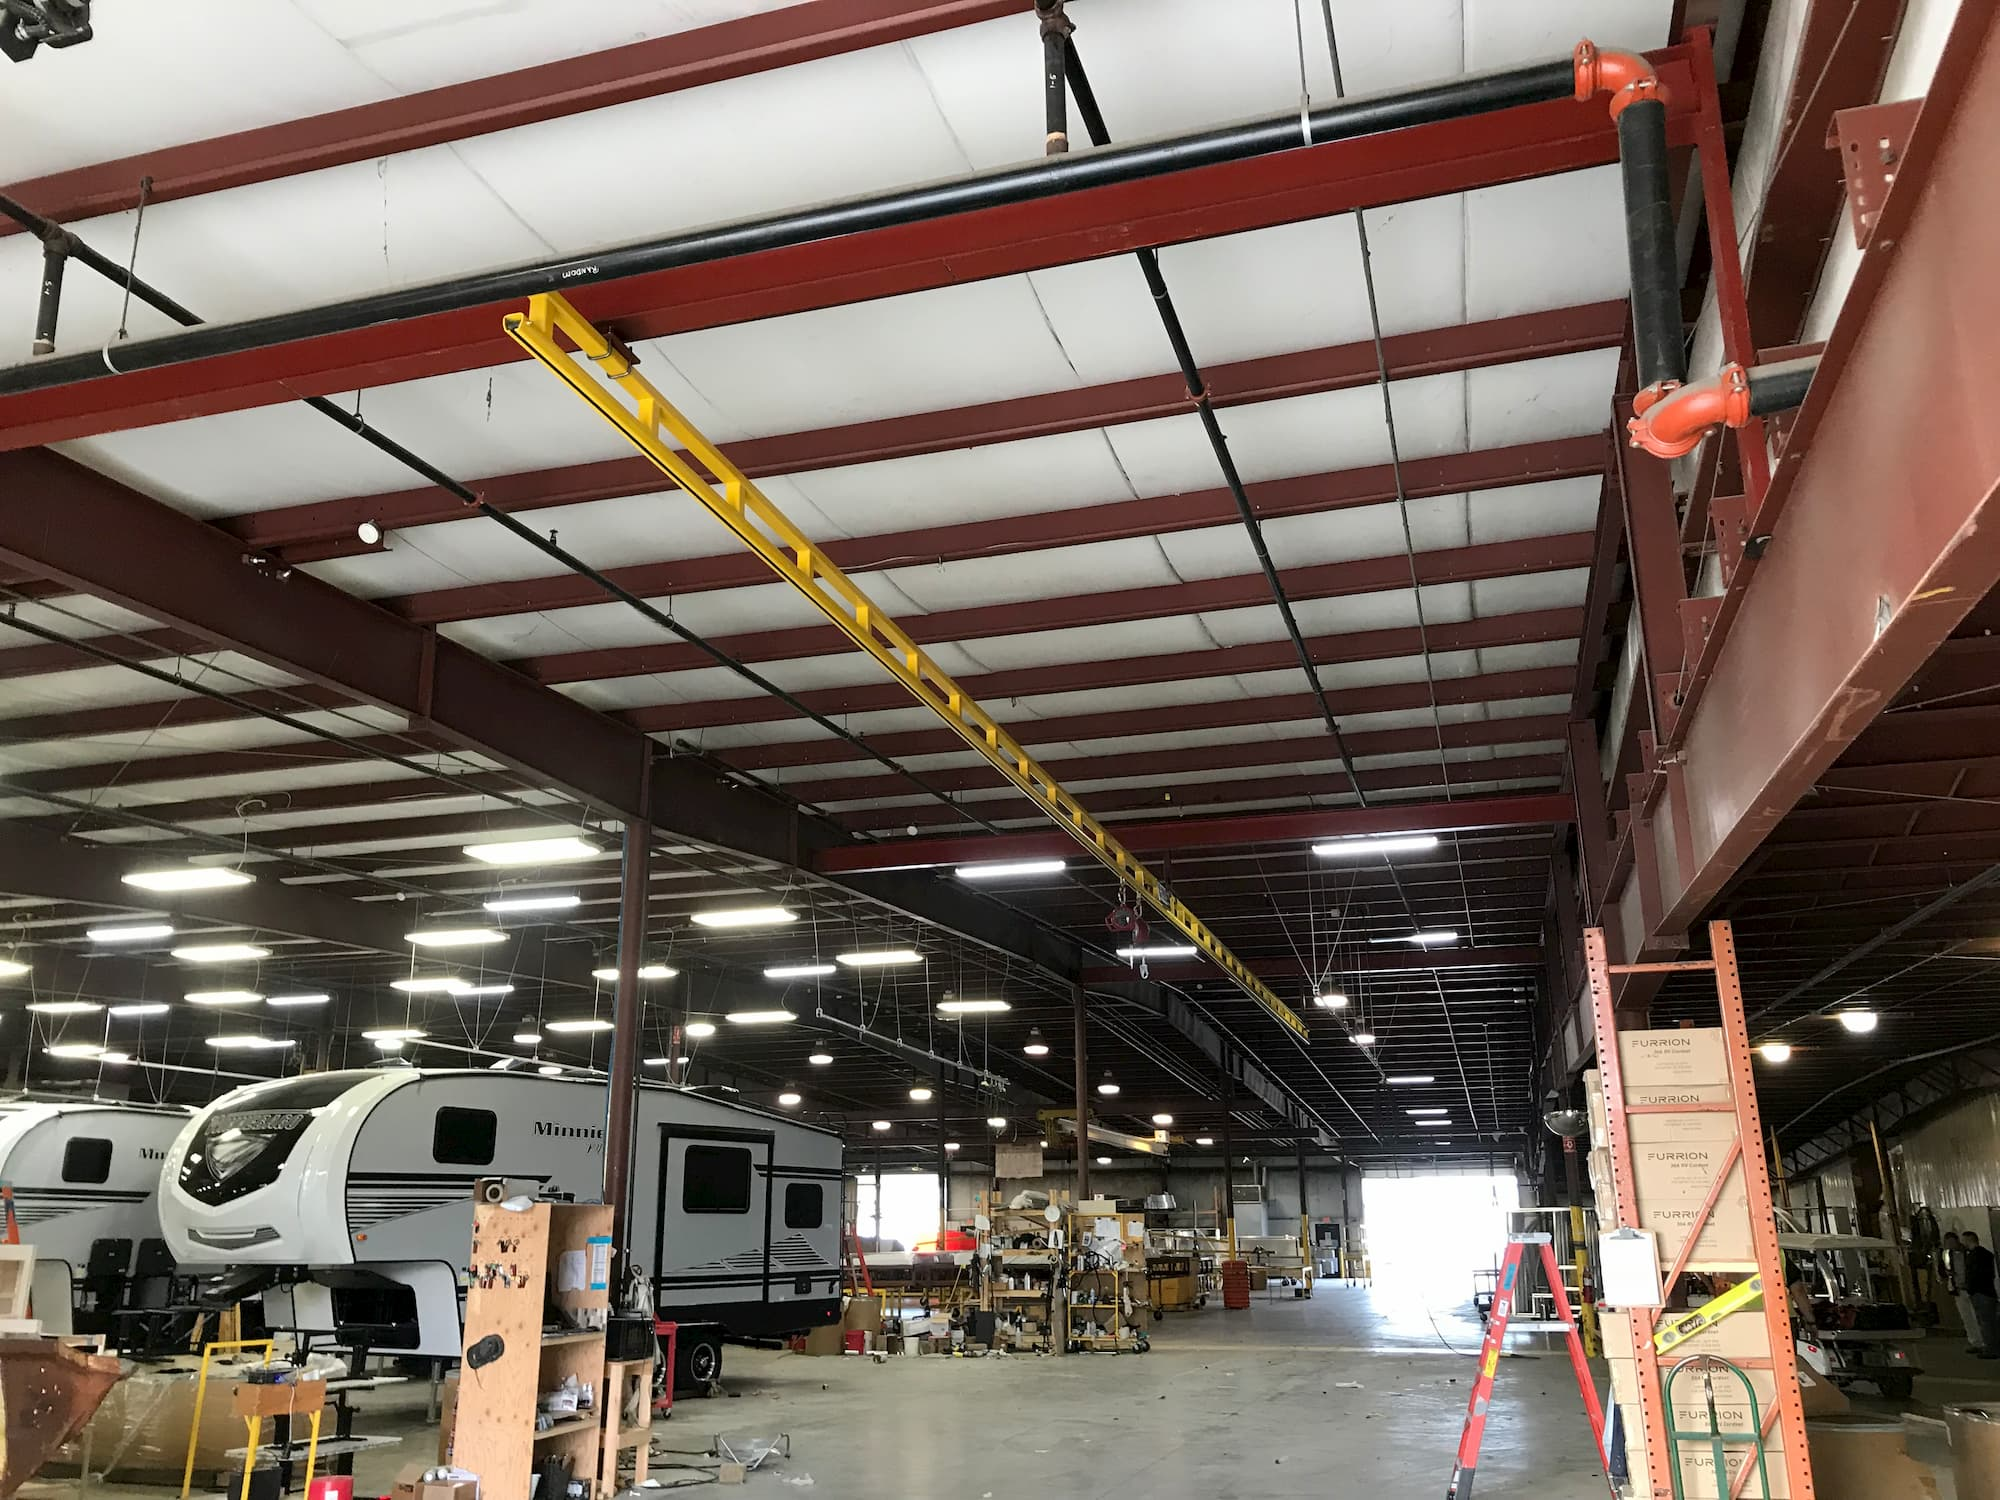 Fall Protection System in Manufacturing Plant